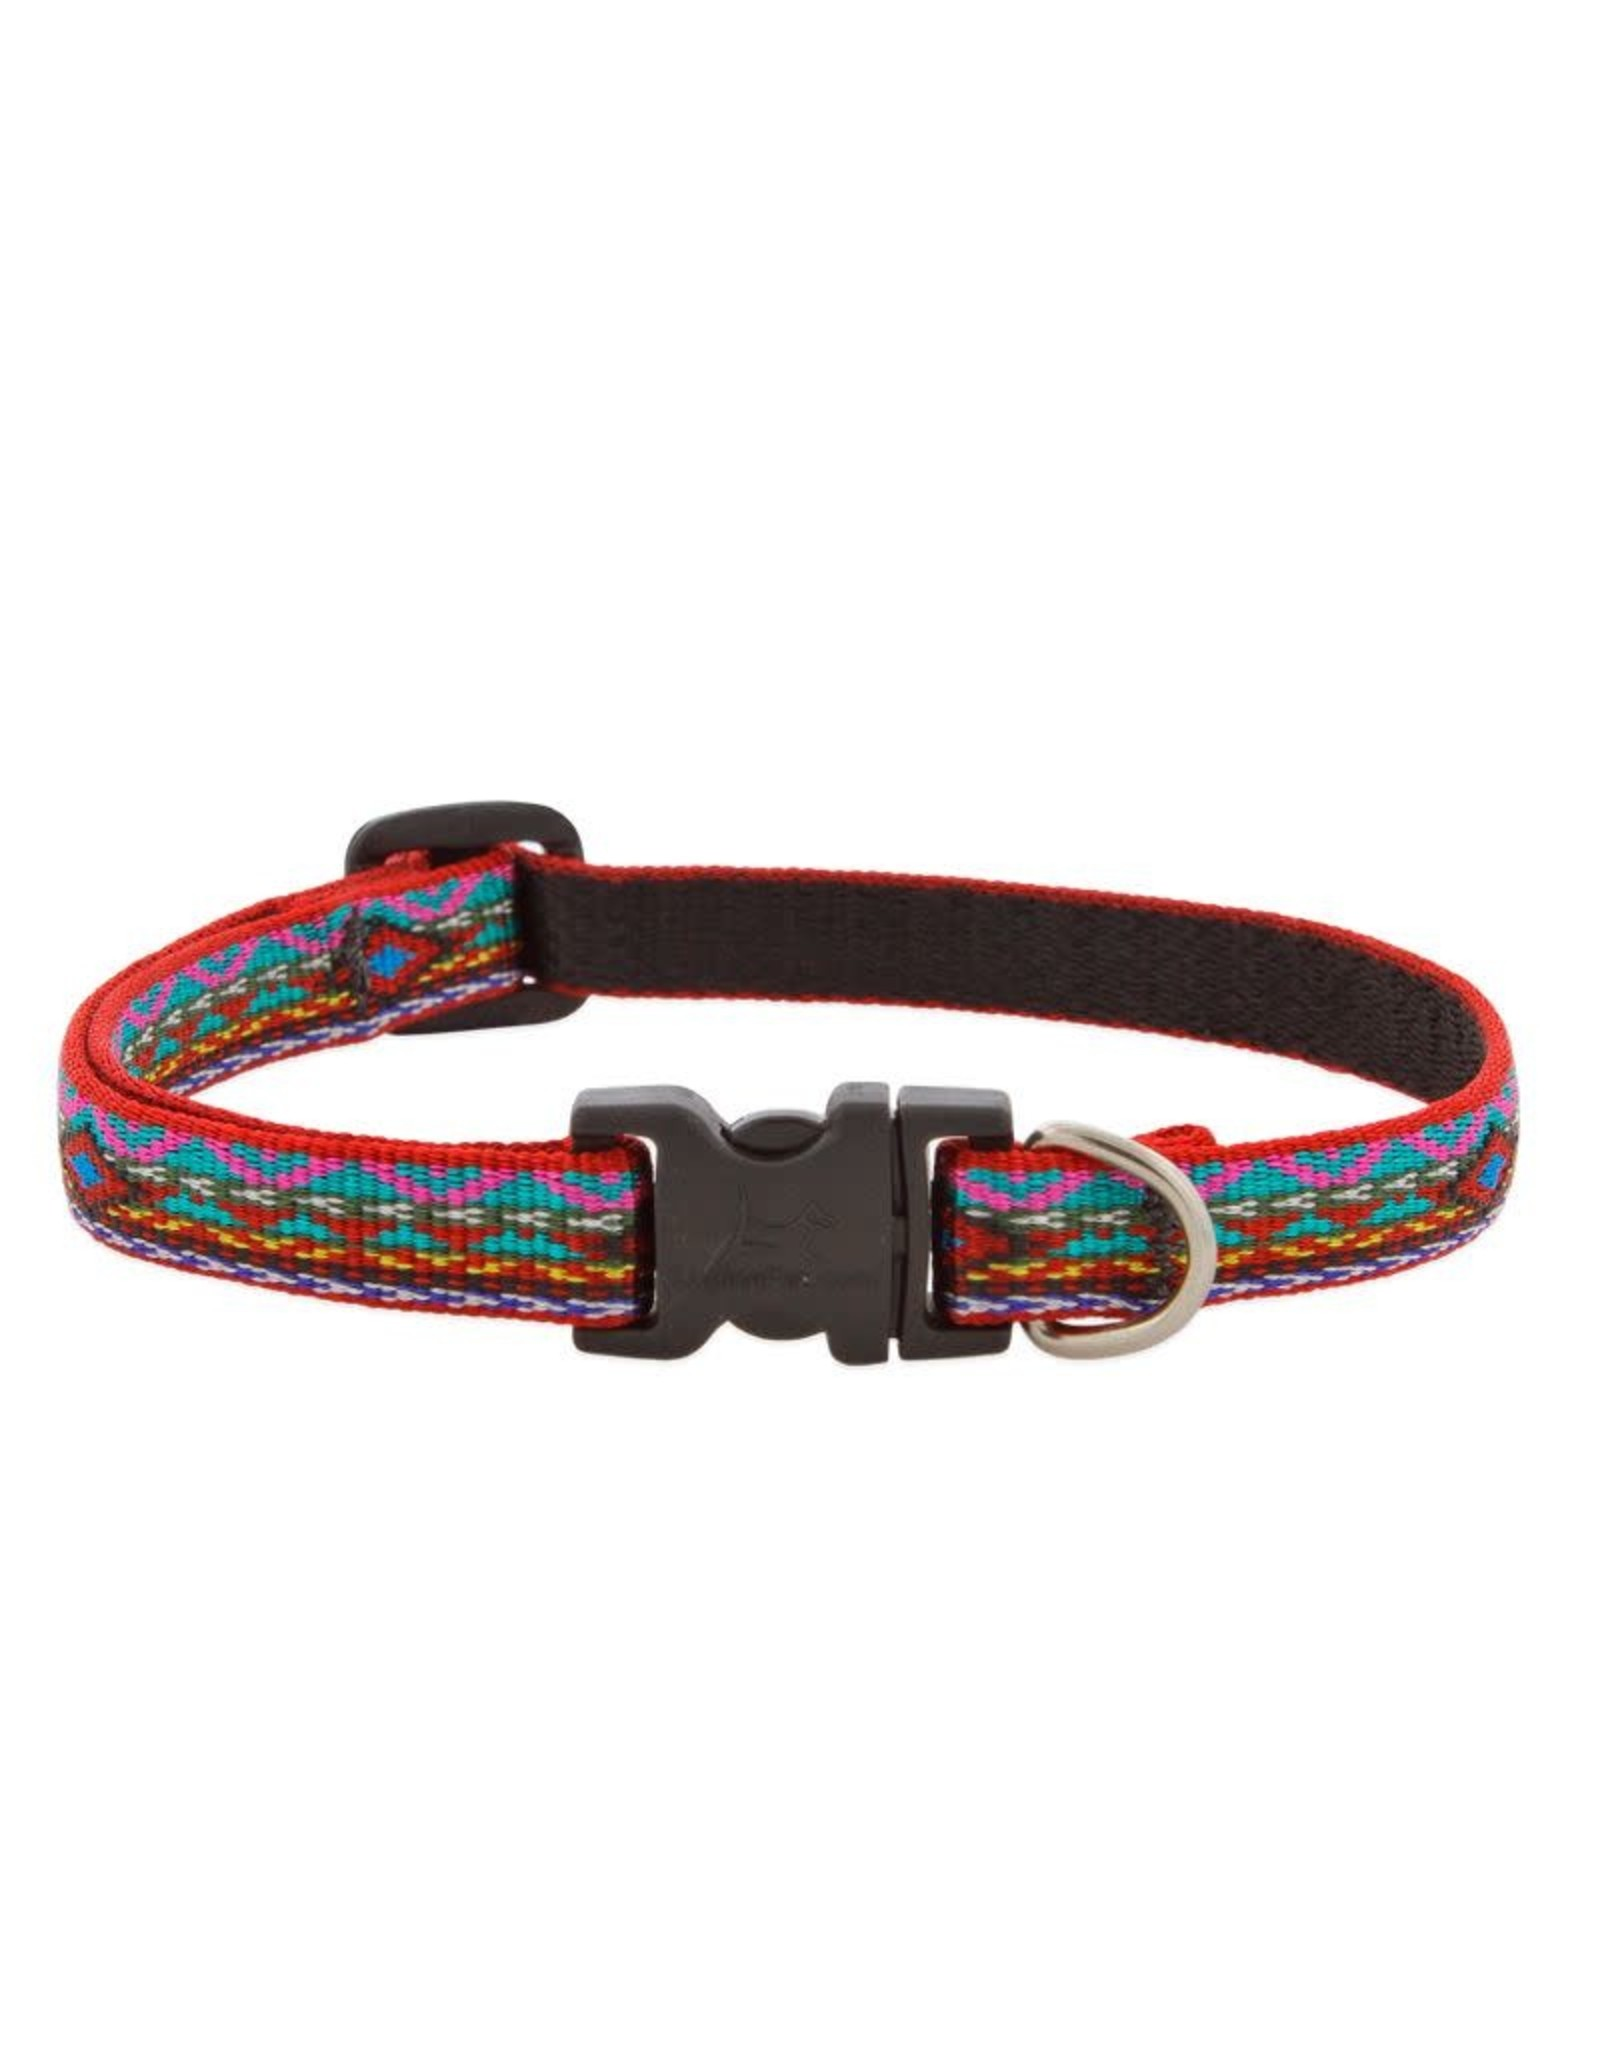 Lupine Lupine El Paso Collar: 1/2 in wide, 10-16 inch